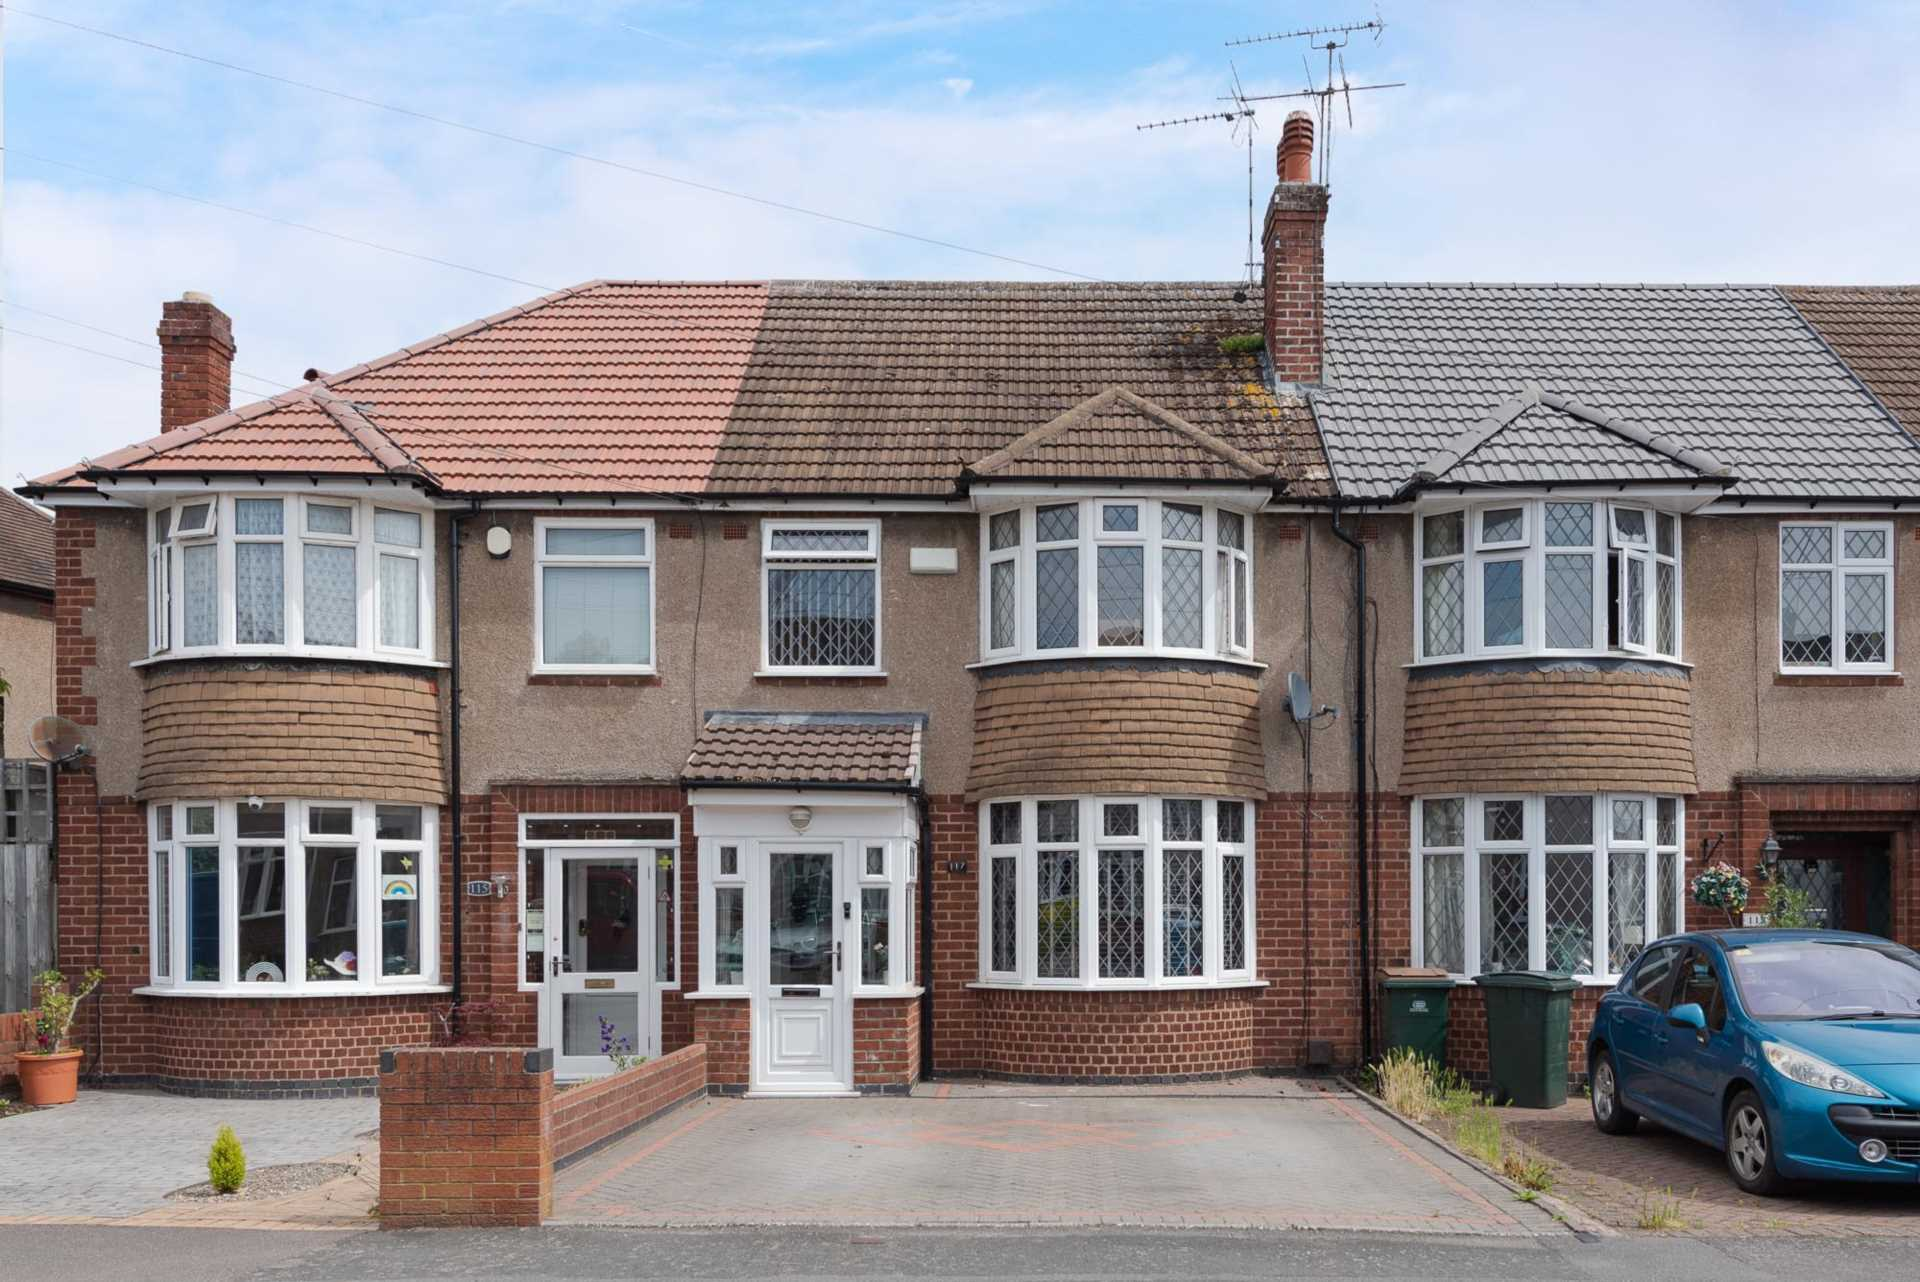 Anchorway Road, Coventry, Image 21